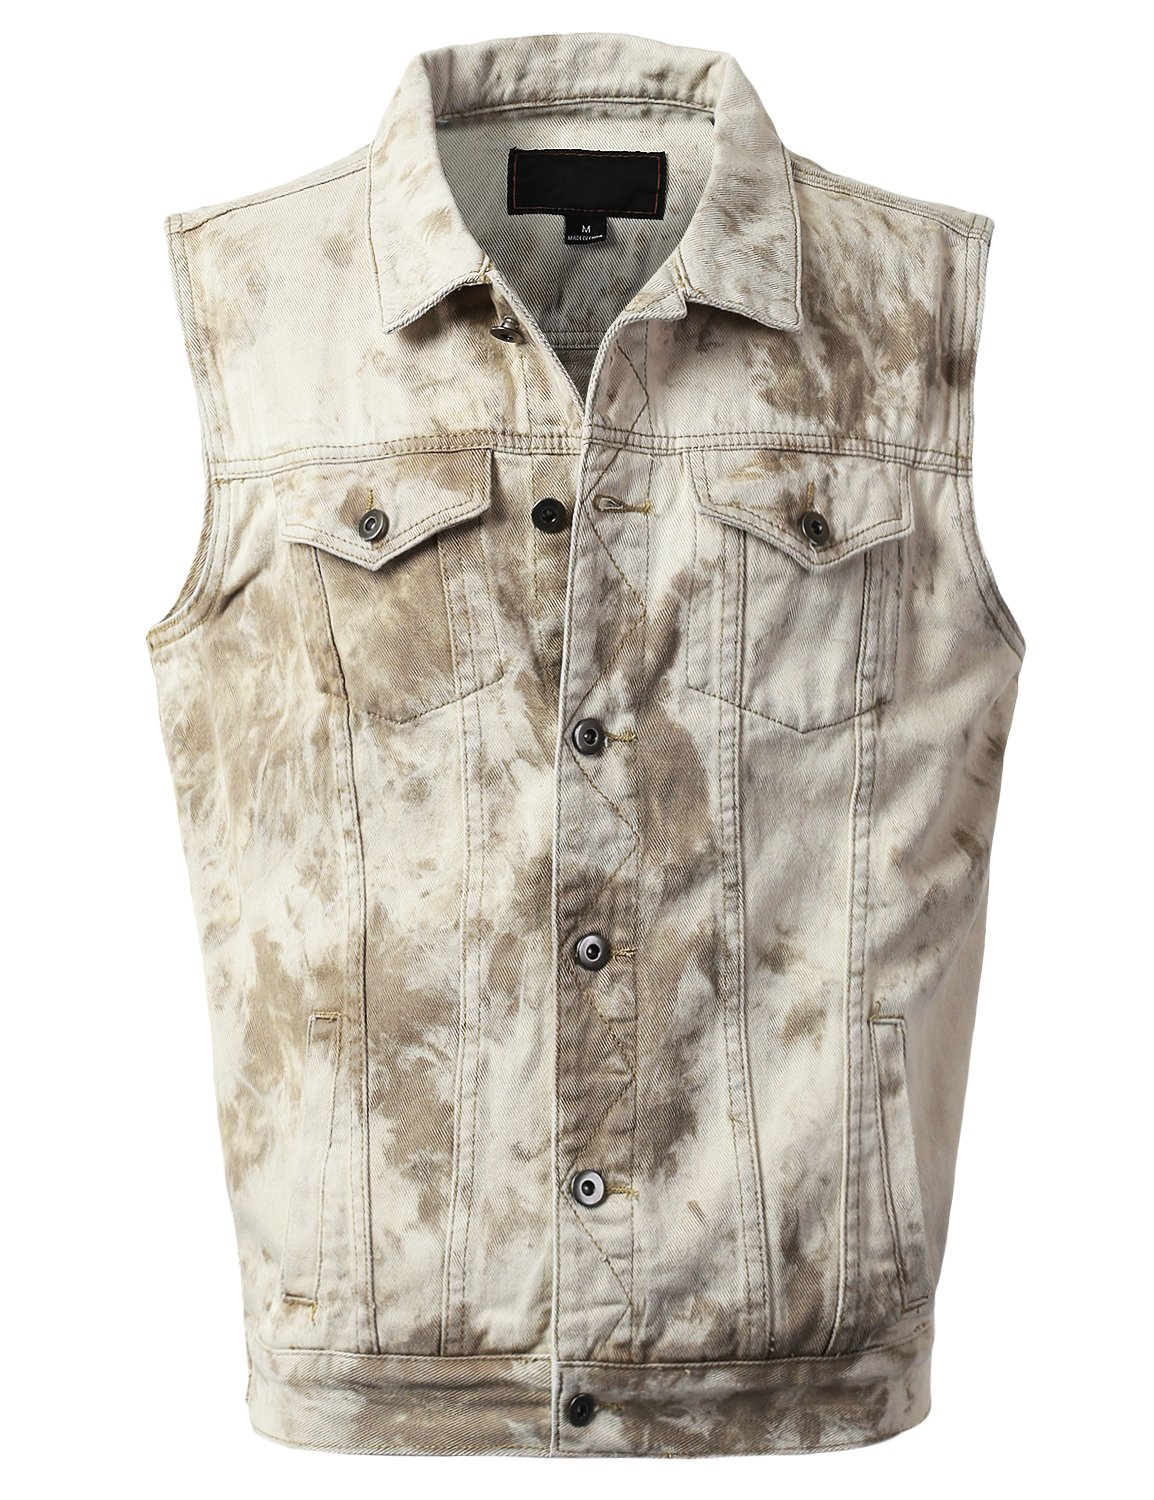 URBANCREWS Mens Hipster Hip Hop Fashion Denim Vest Jacket Tan, XL